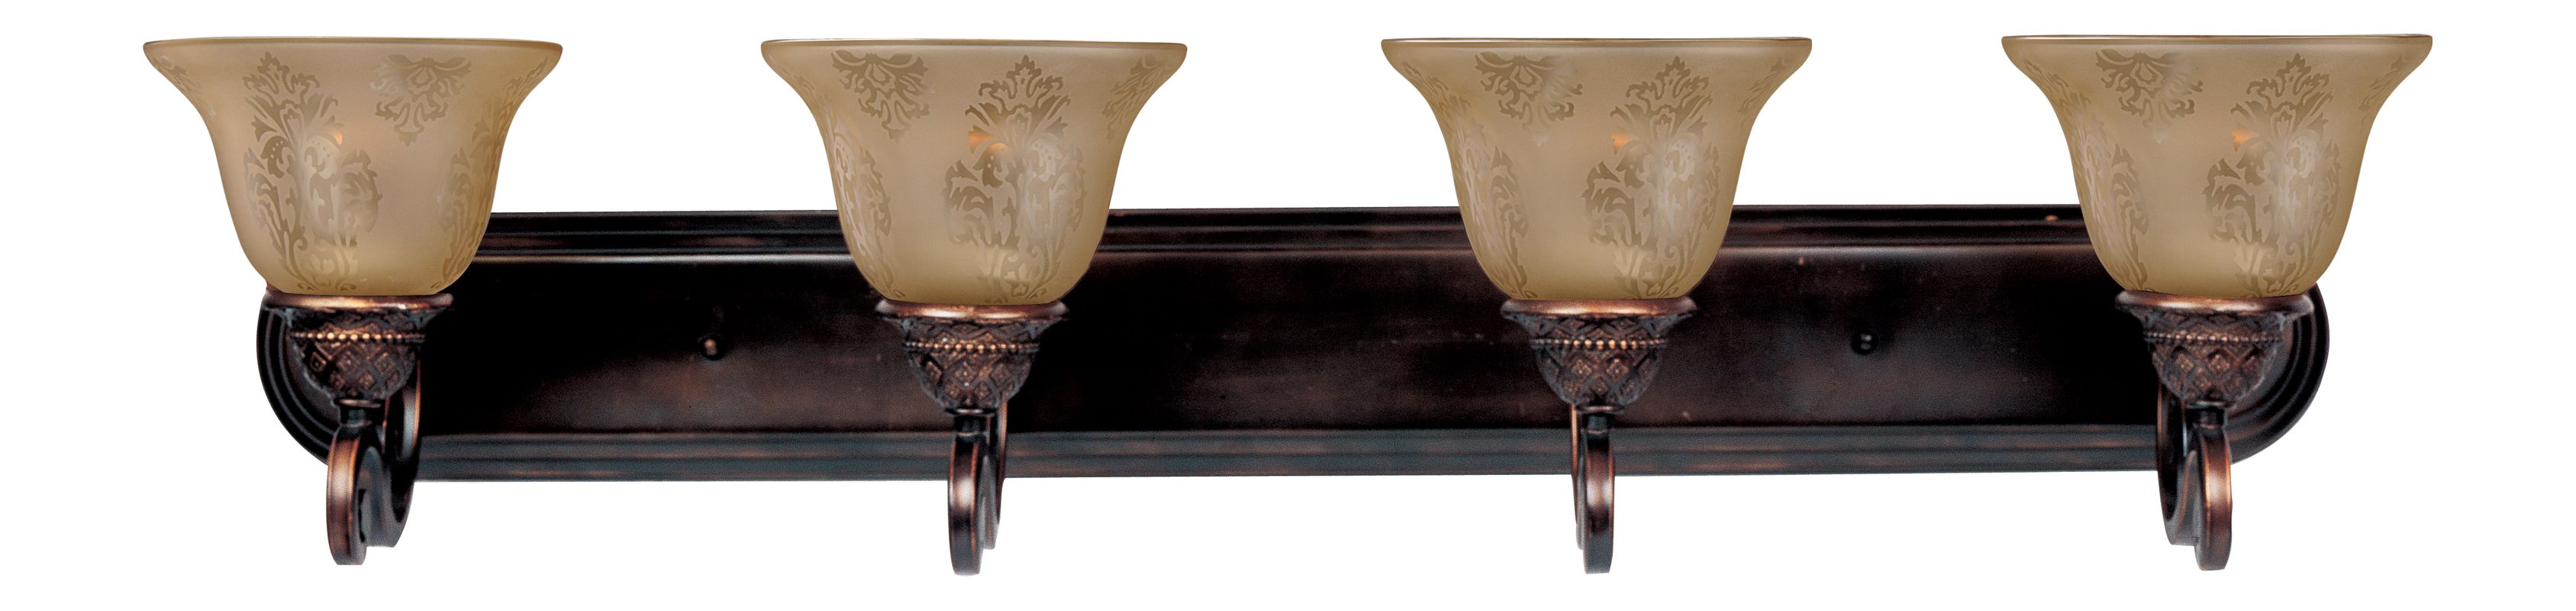 """Maxim 11233 4 Light 37"""" Wide Bathroom Fixture from the Symphony"""